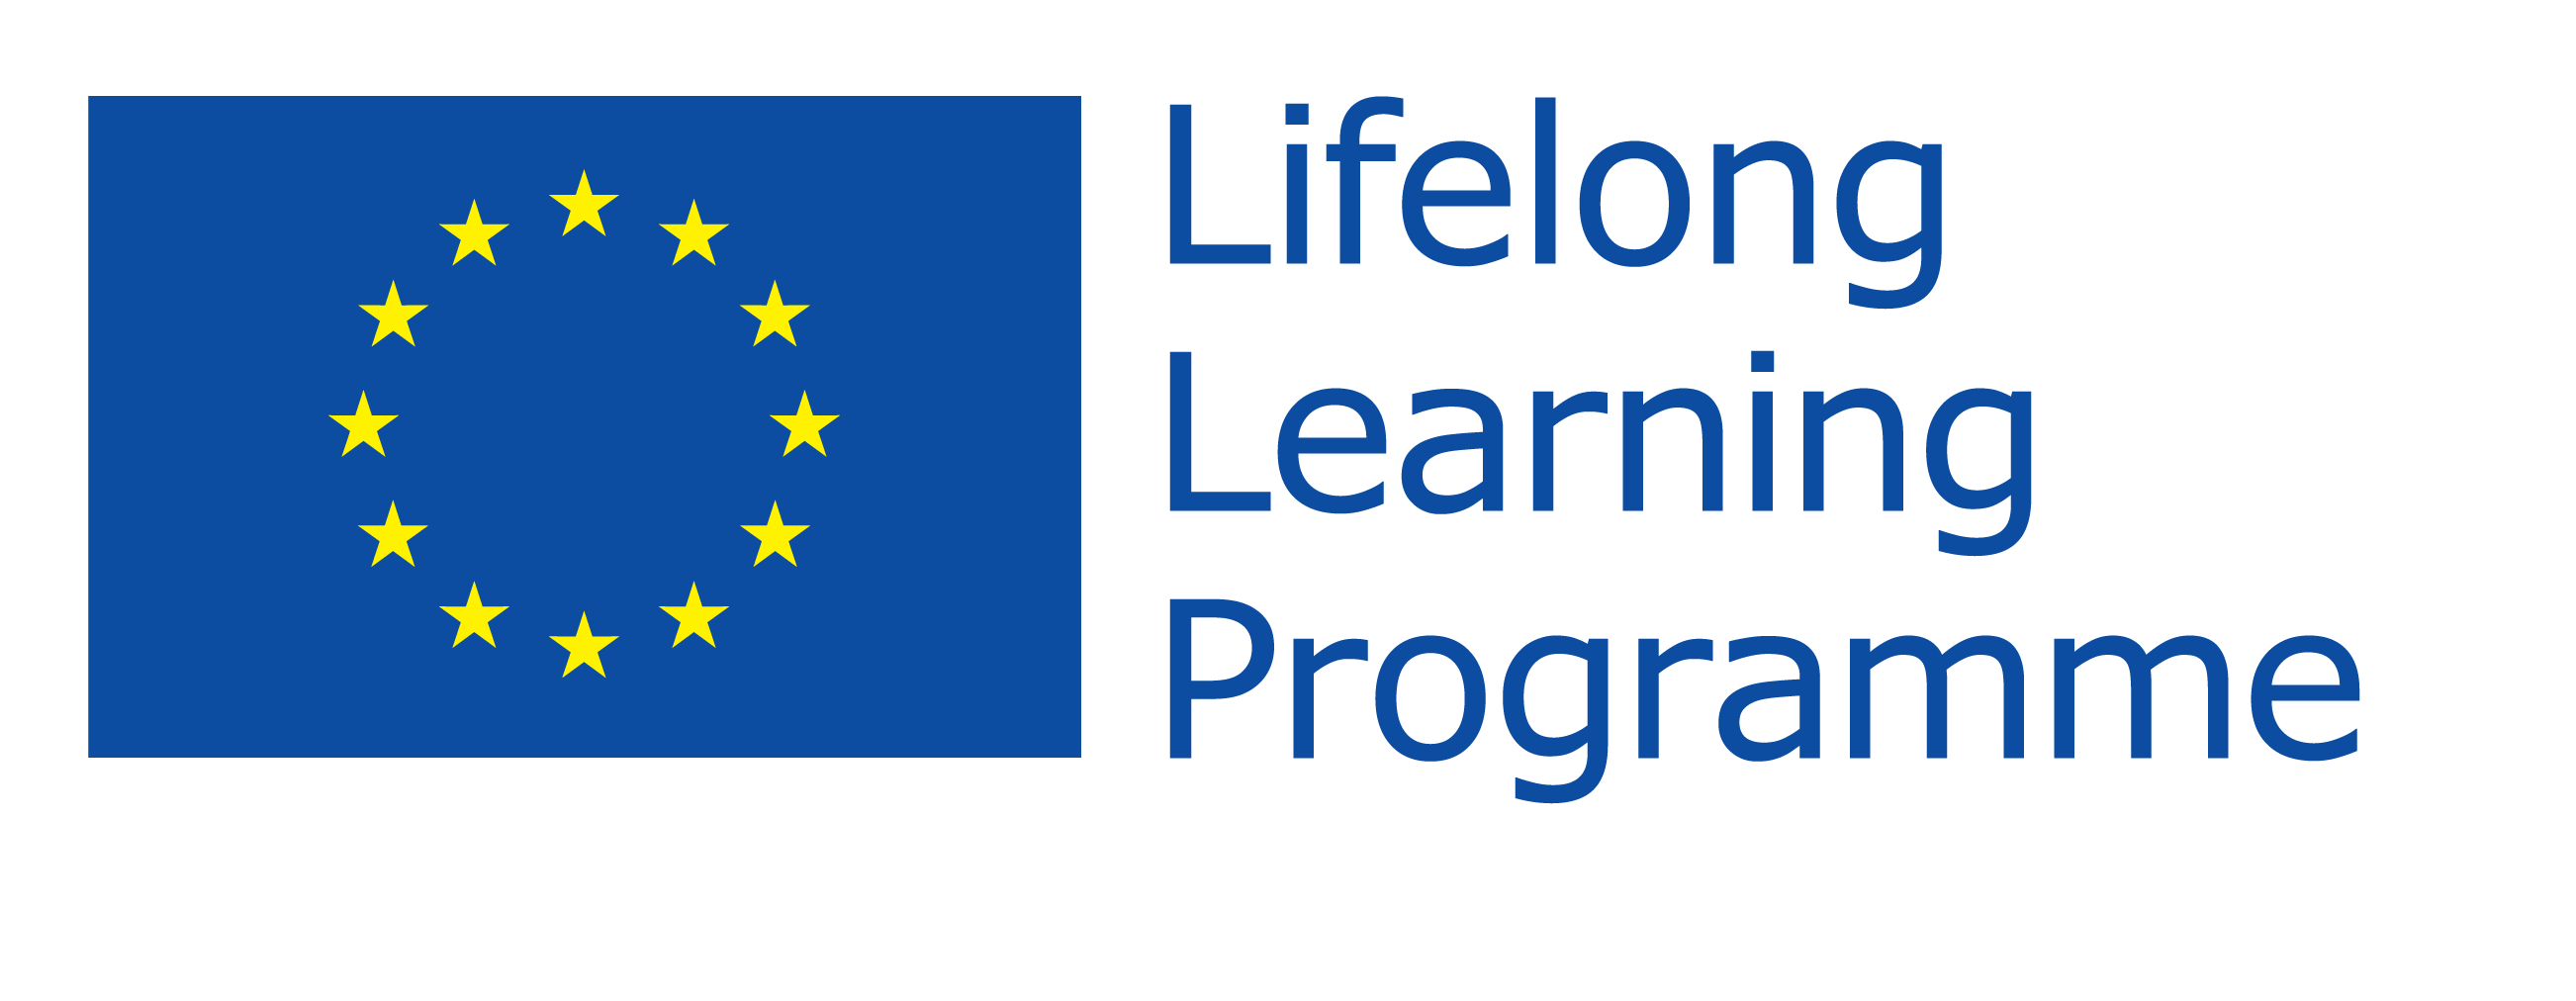 Lifelong Learning Program